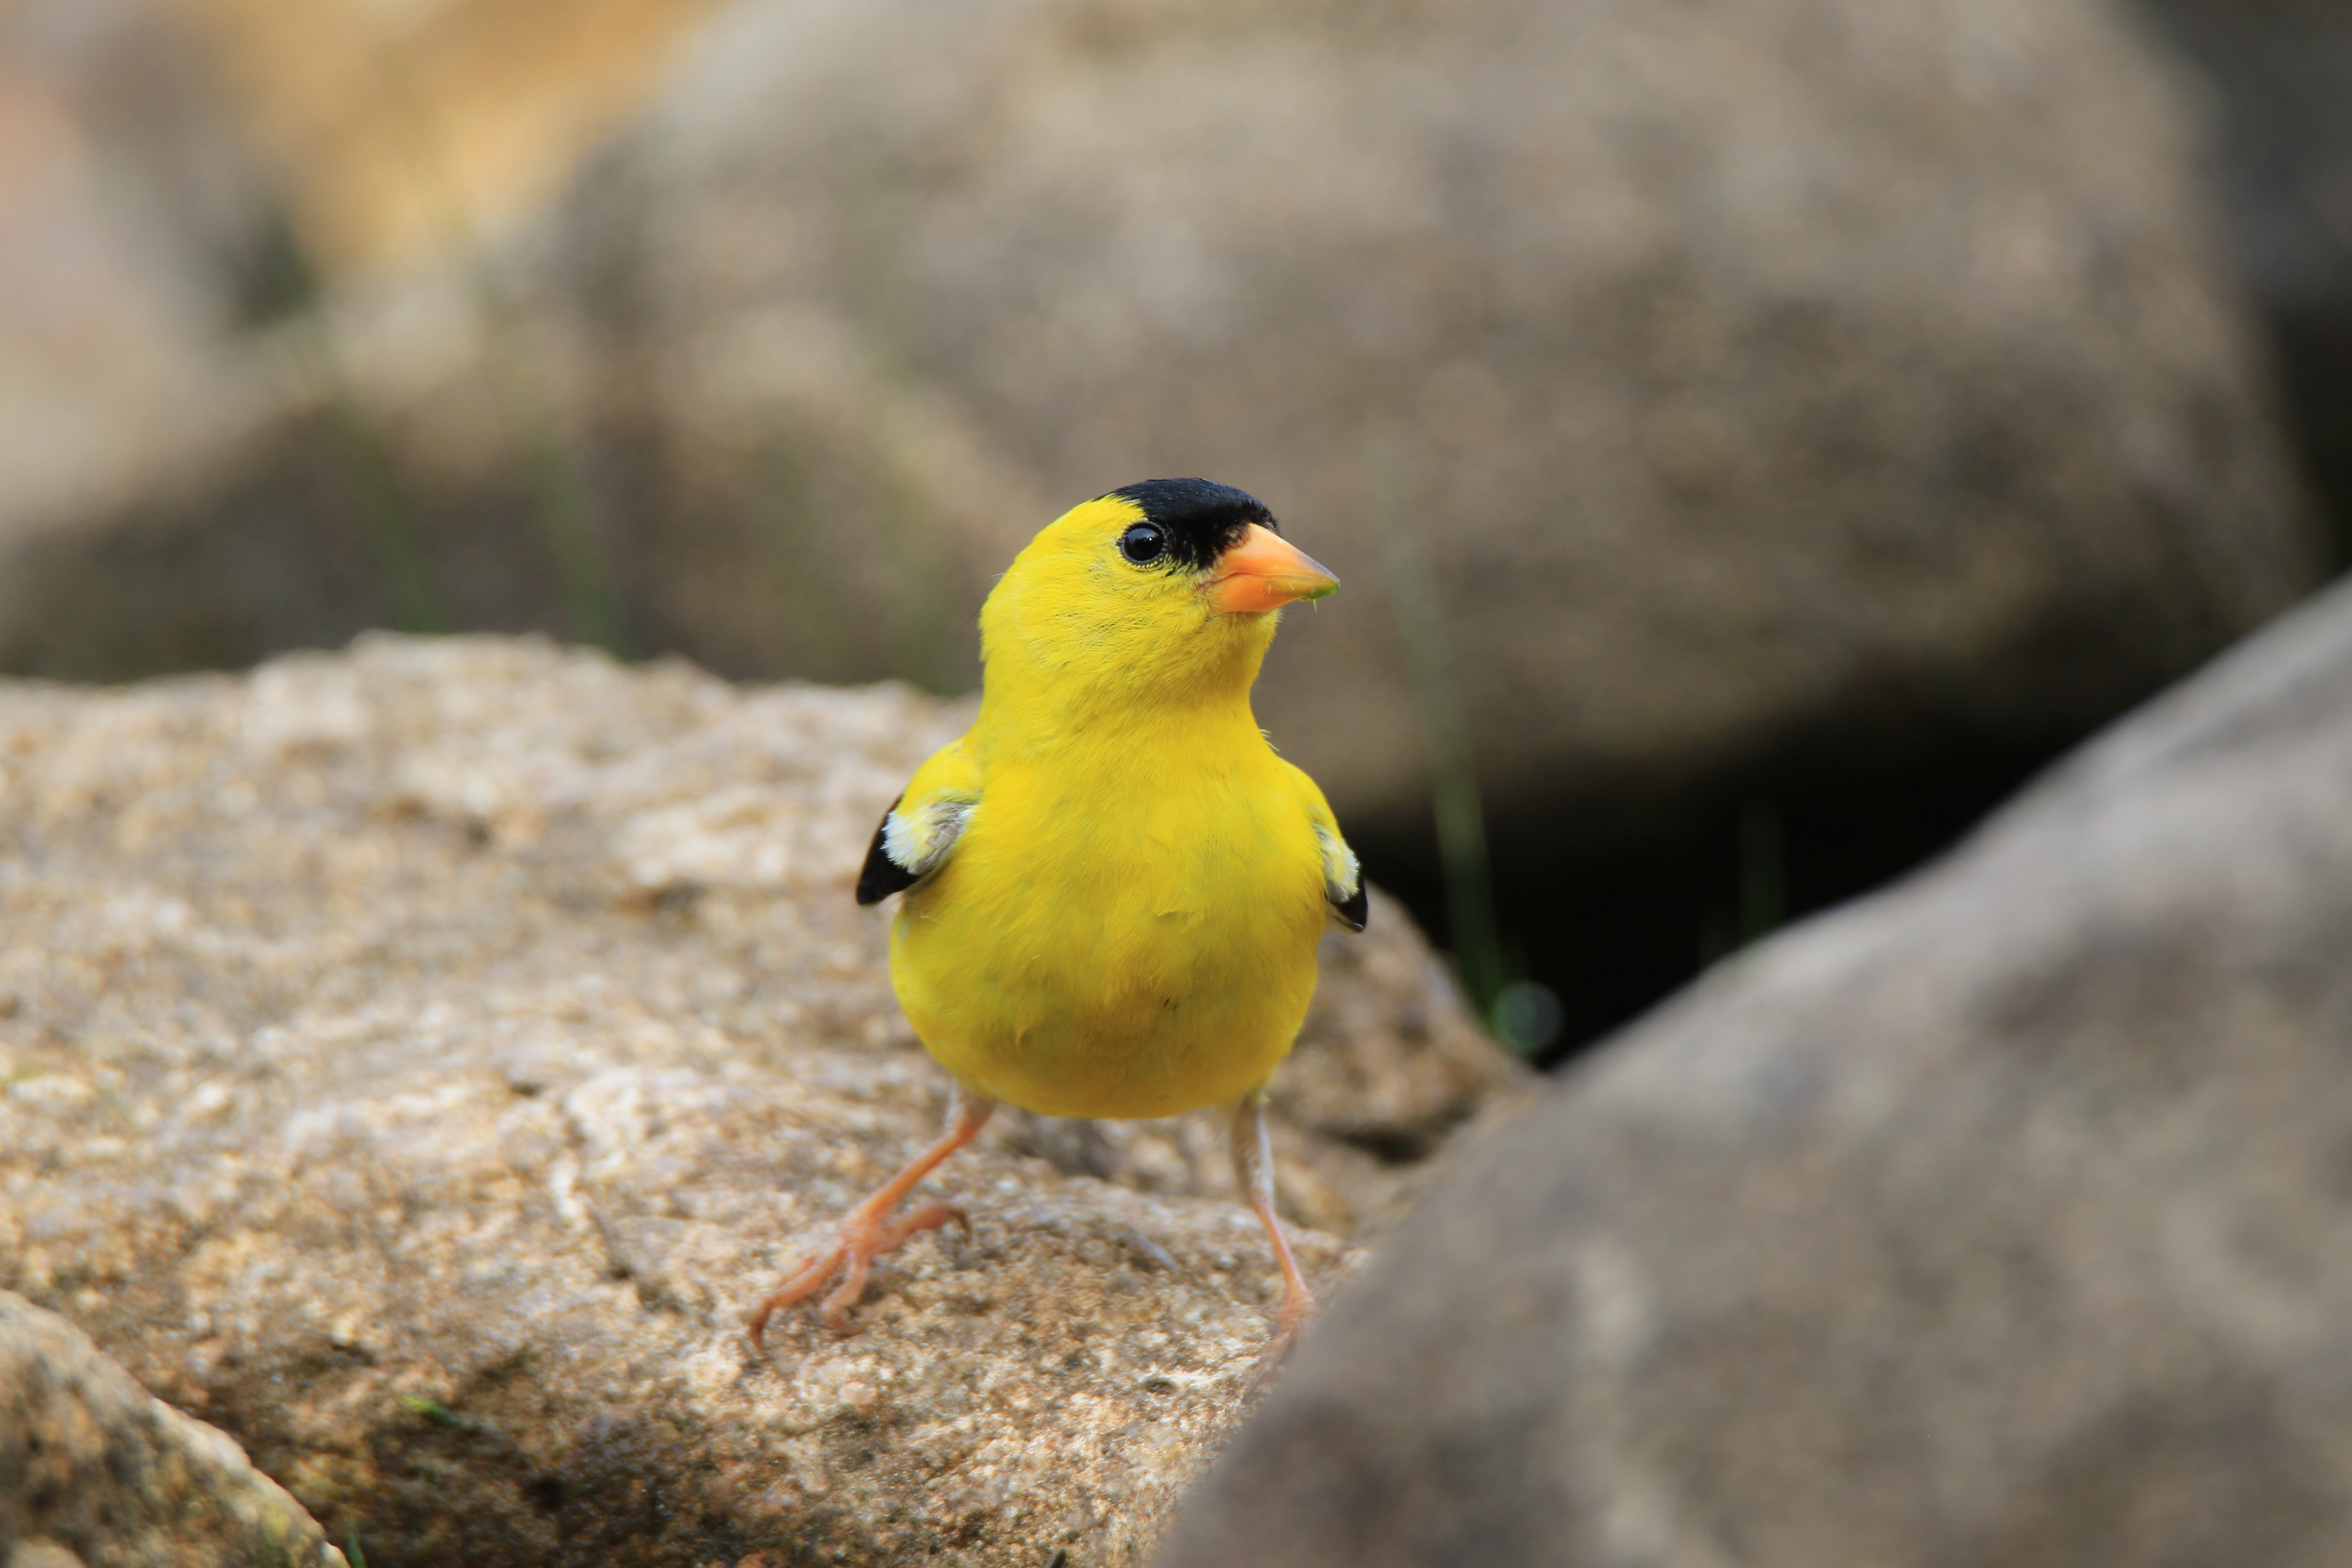 wild yello canary sitting on rocks